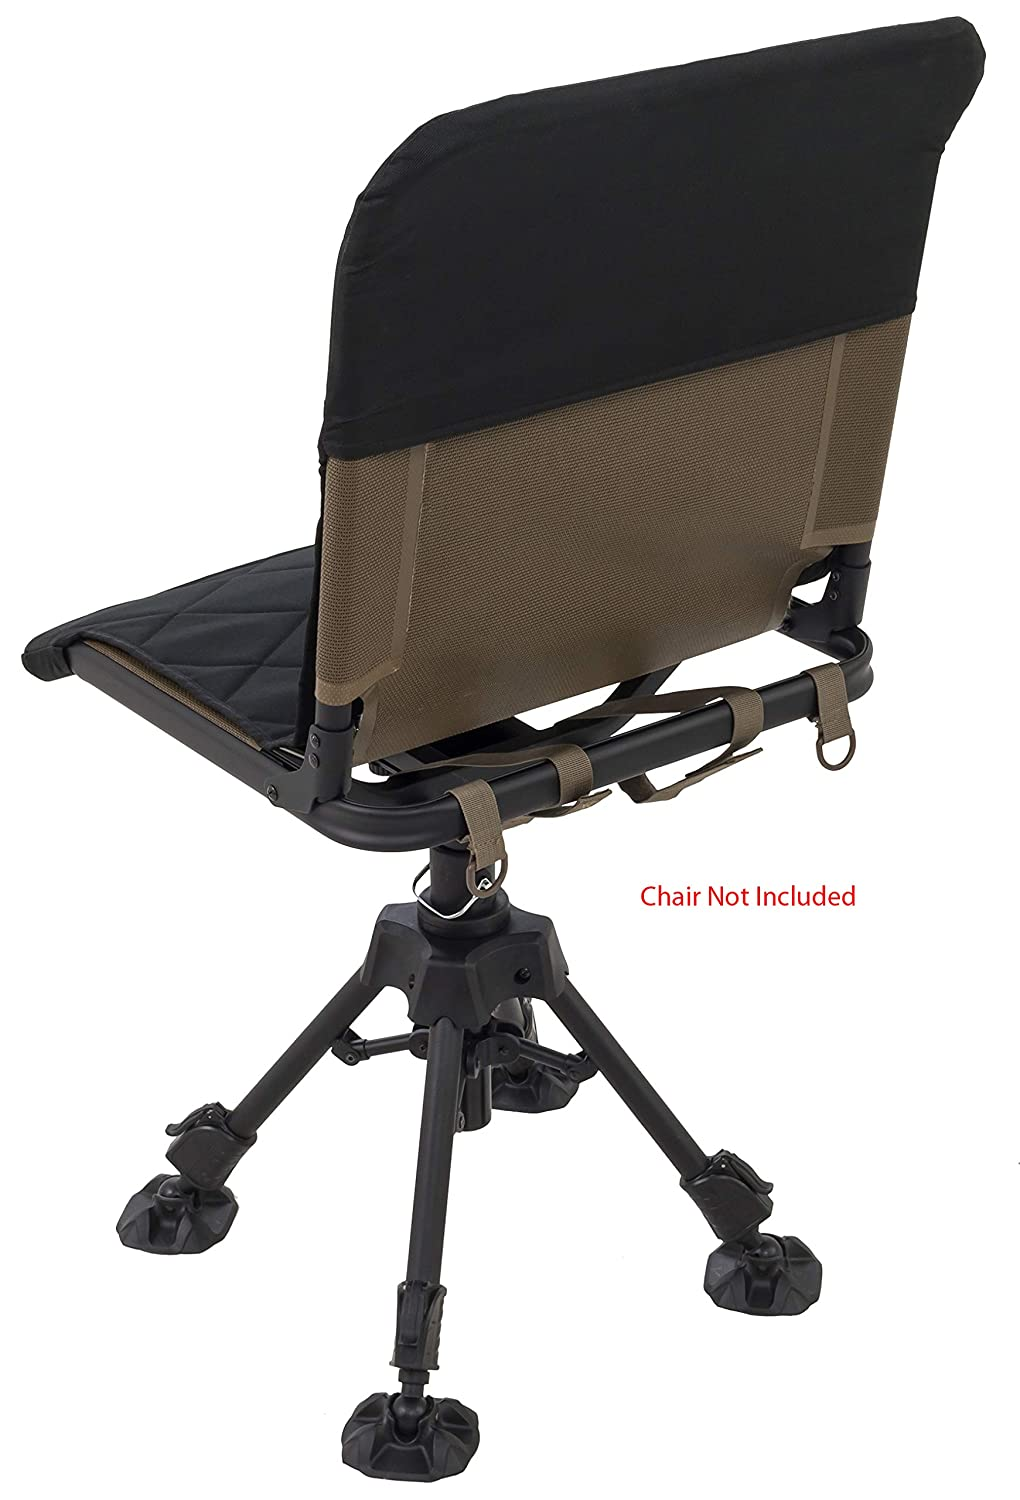 Marvelous Alps Outdoorz Stealth Hunter Blind Chair Seat Cover Cjindustries Chair Design For Home Cjindustriesco